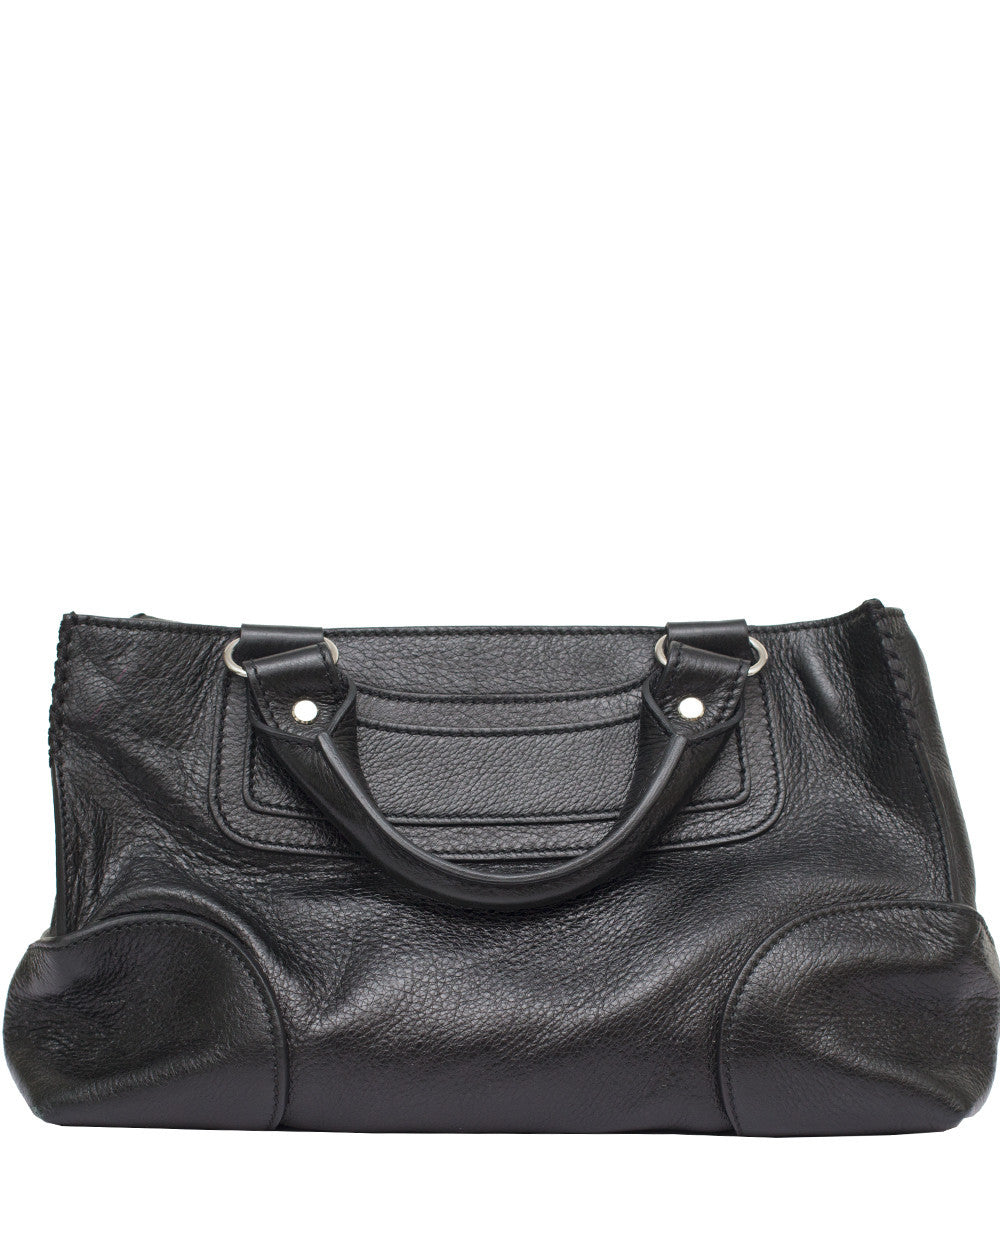 Celine Top Handle Bag